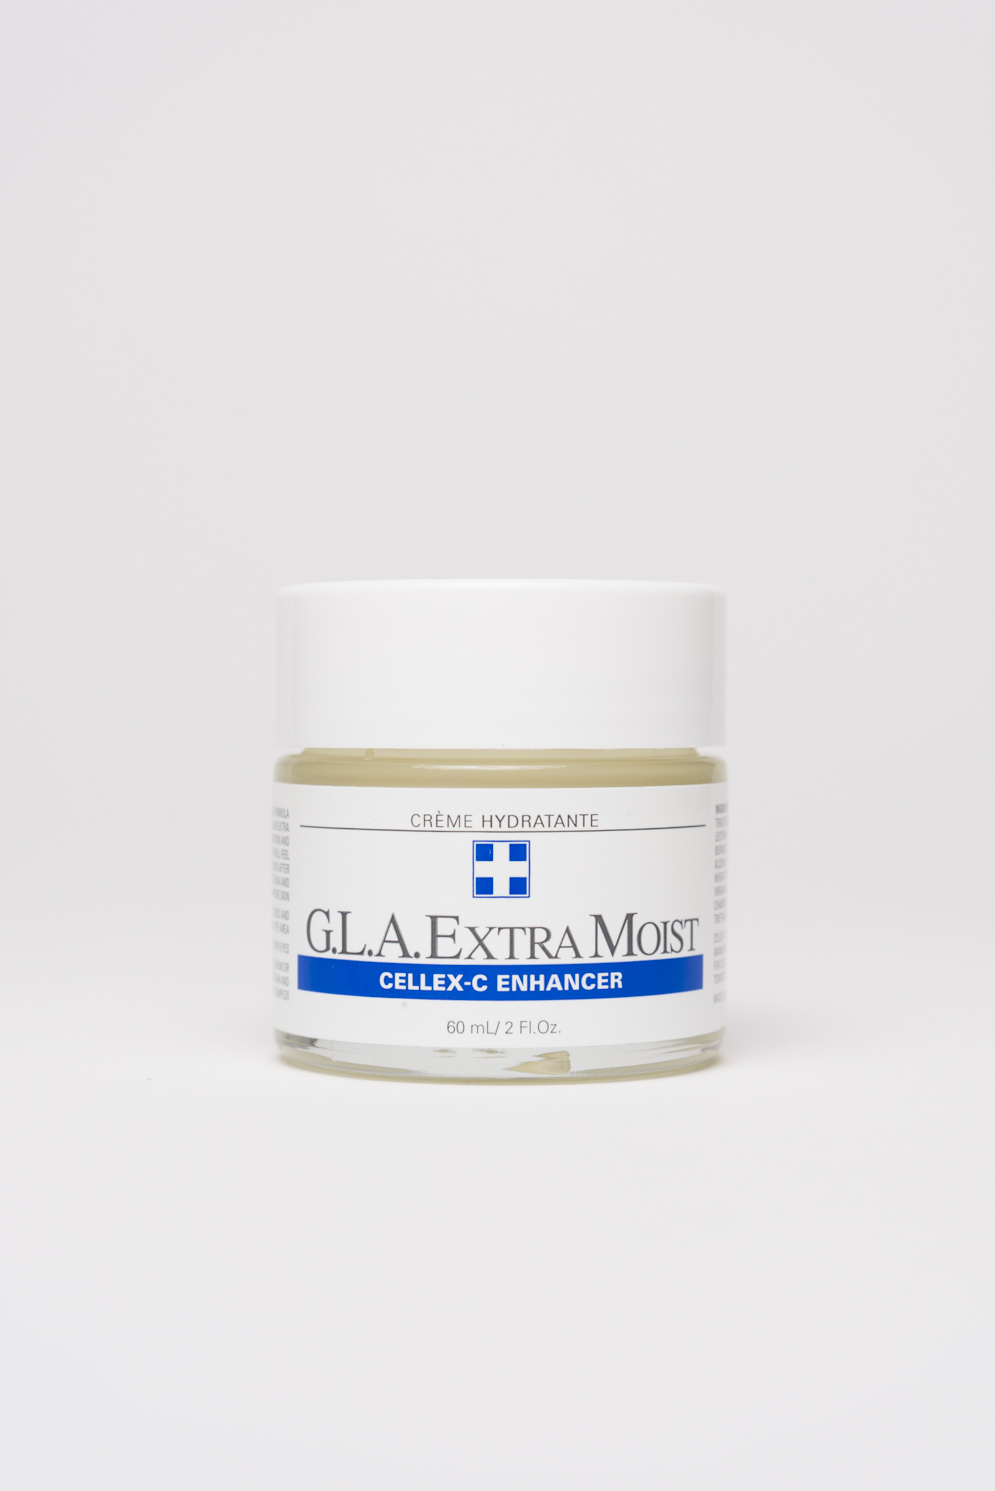 ROCK MAMA NYC LIFESTYLE BLOG - time to change your moisturizer